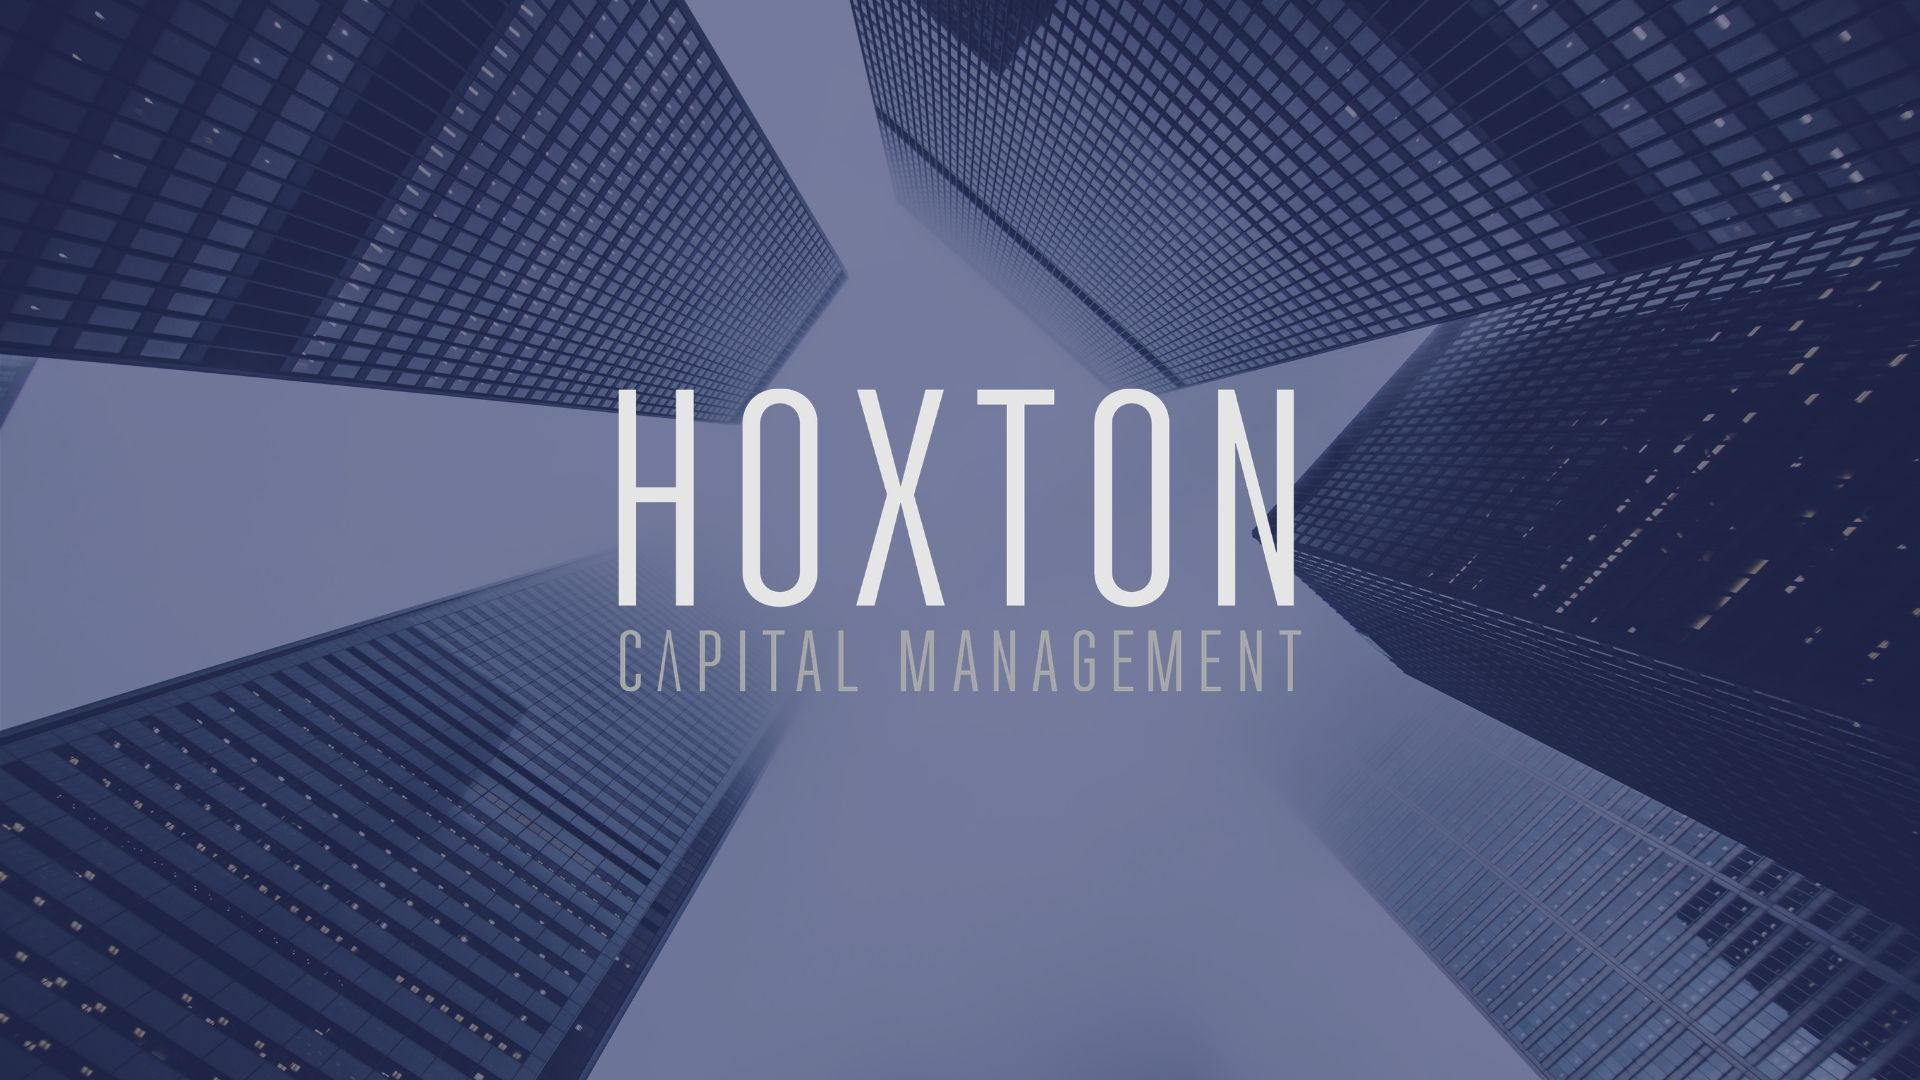 Hoxton Capital Management surpasses GBP 500 million (USD 691 million) in assets under management